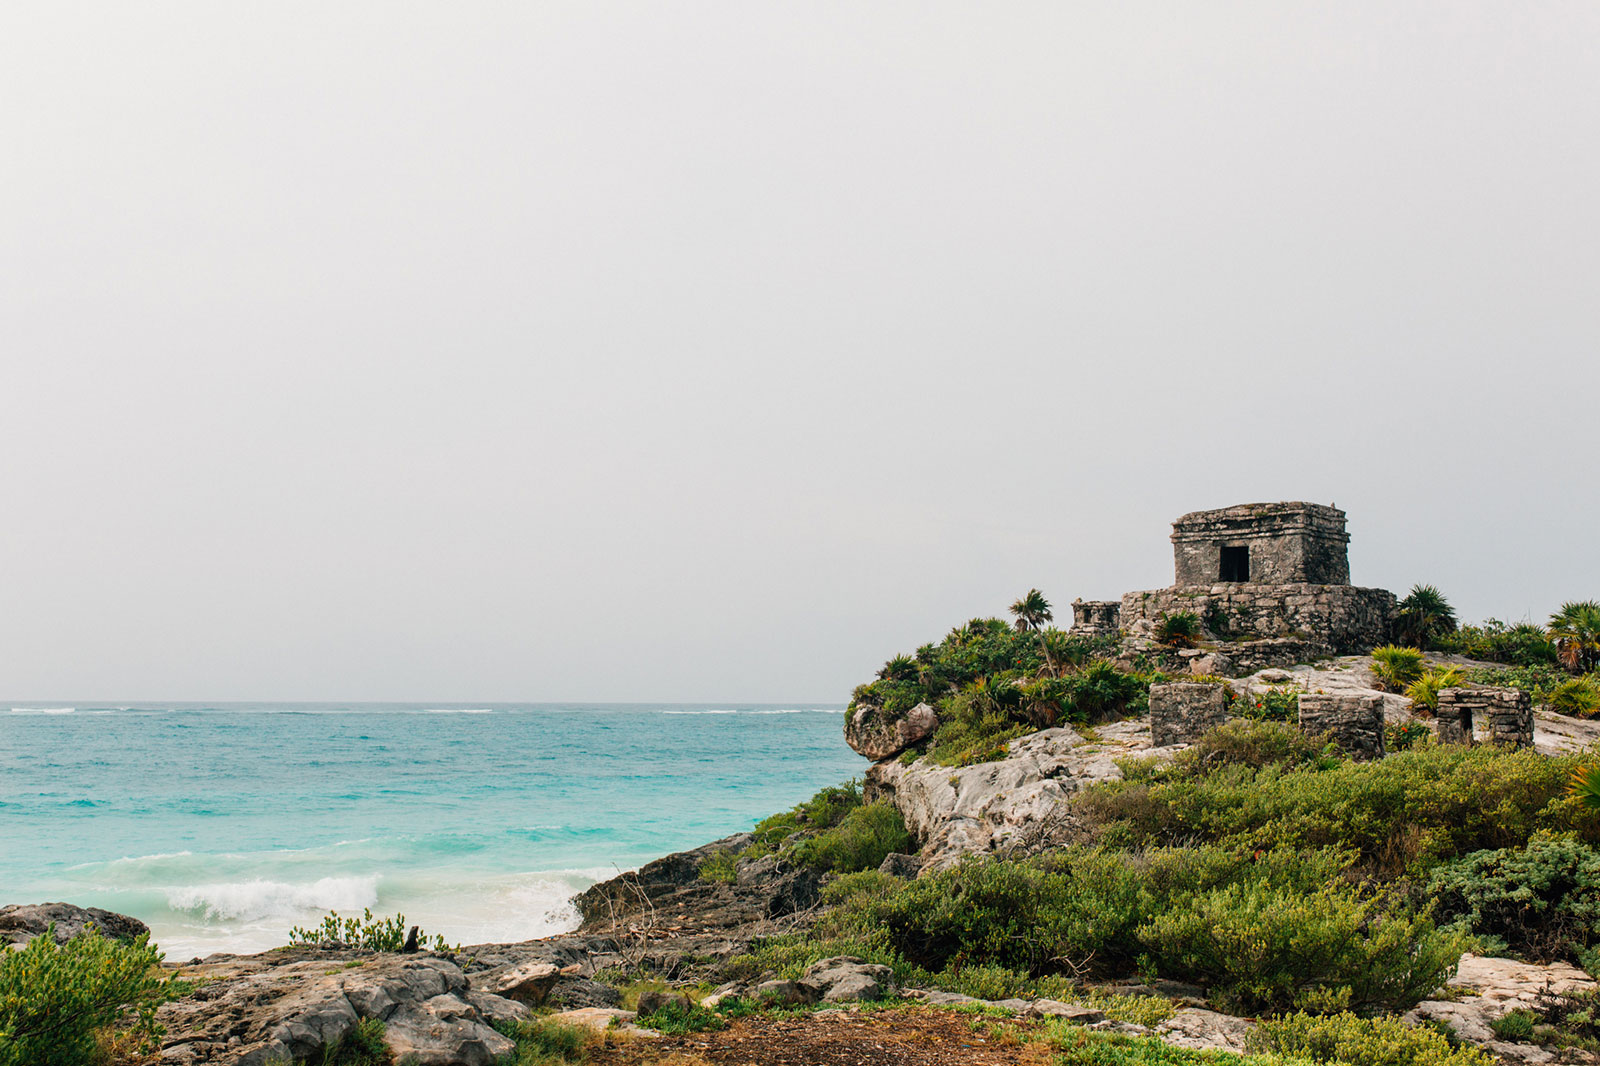 Maya_Luxe_Riviera_Maya_Luxury_Vacations_Magazine_Local_Stories_Secrets_of_the_Gods_in_Tulum_Riviera_Maya's_Only_Clifftop_Ruin_2.jpg